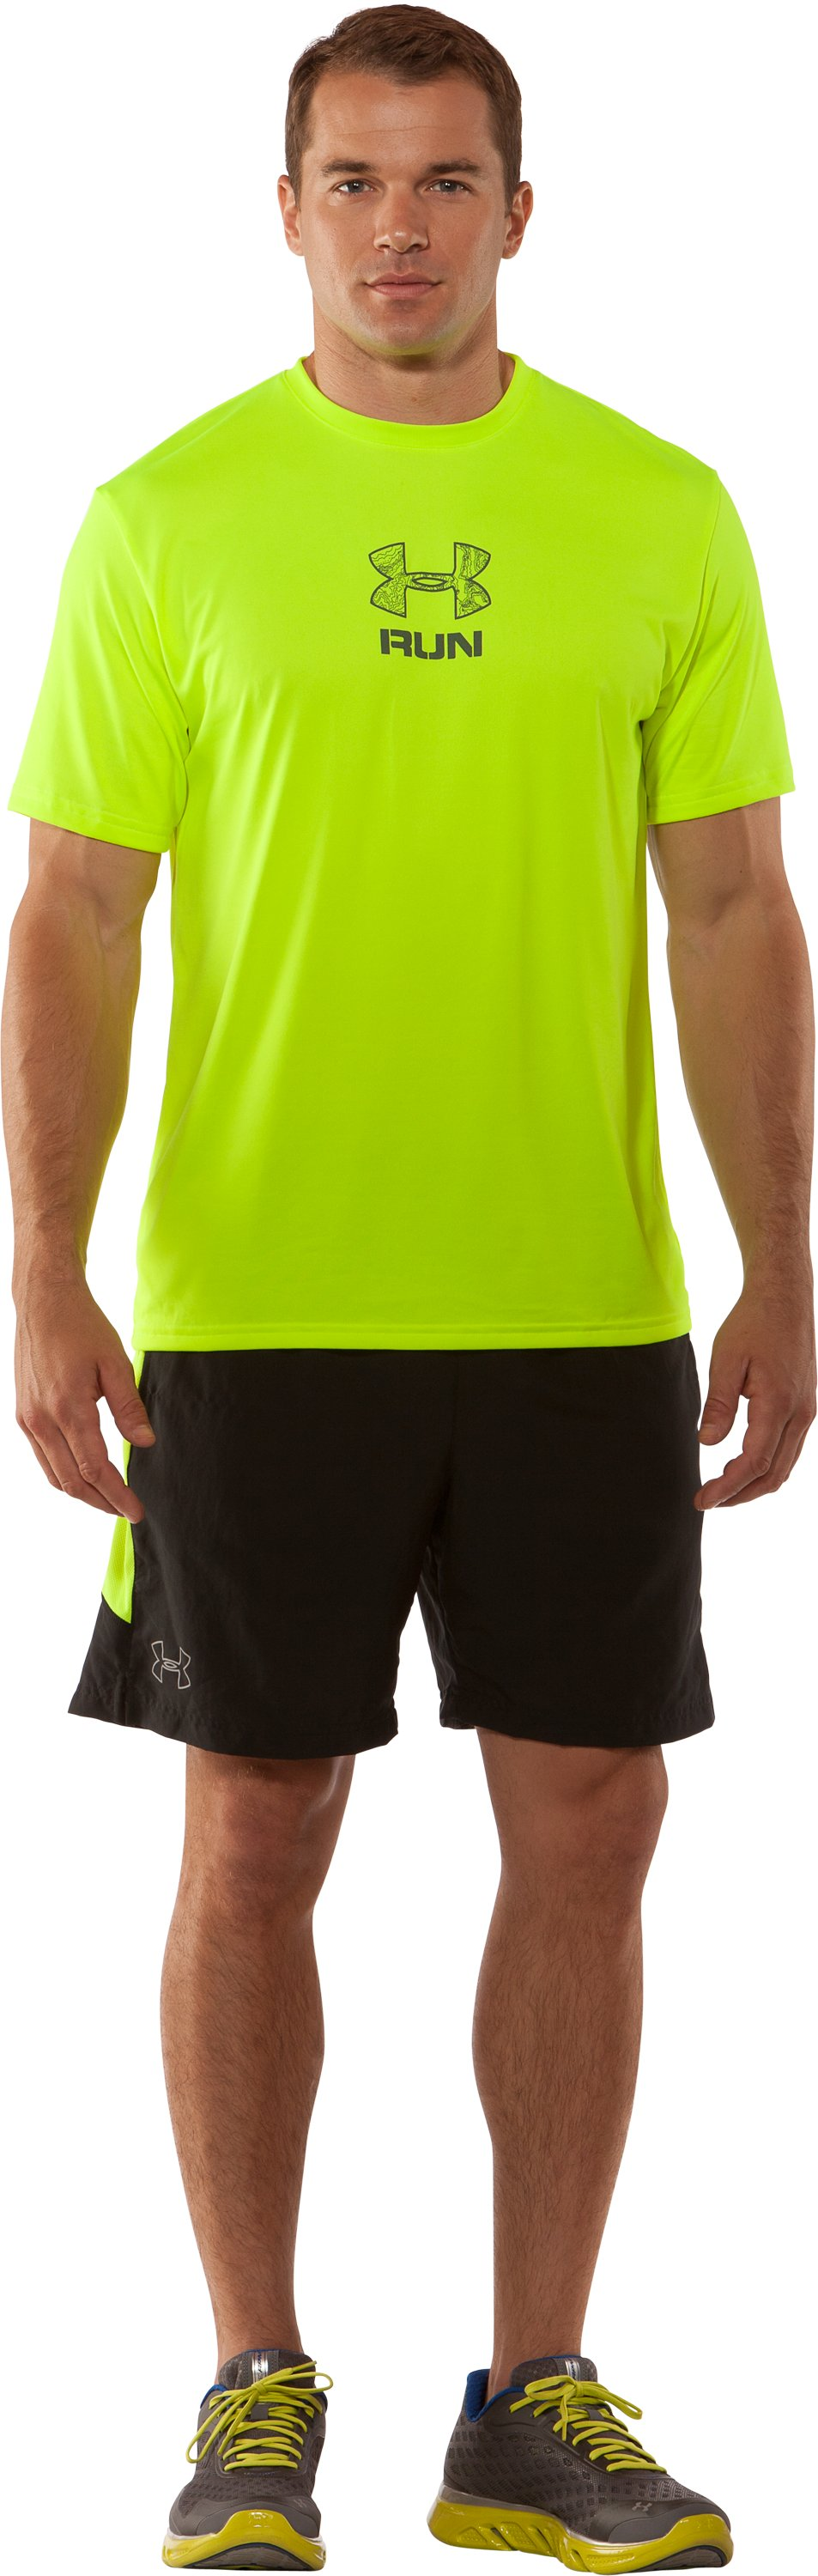 Men's UA Tough Run Graphic T-Shirt, High-Vis Yellow, Front